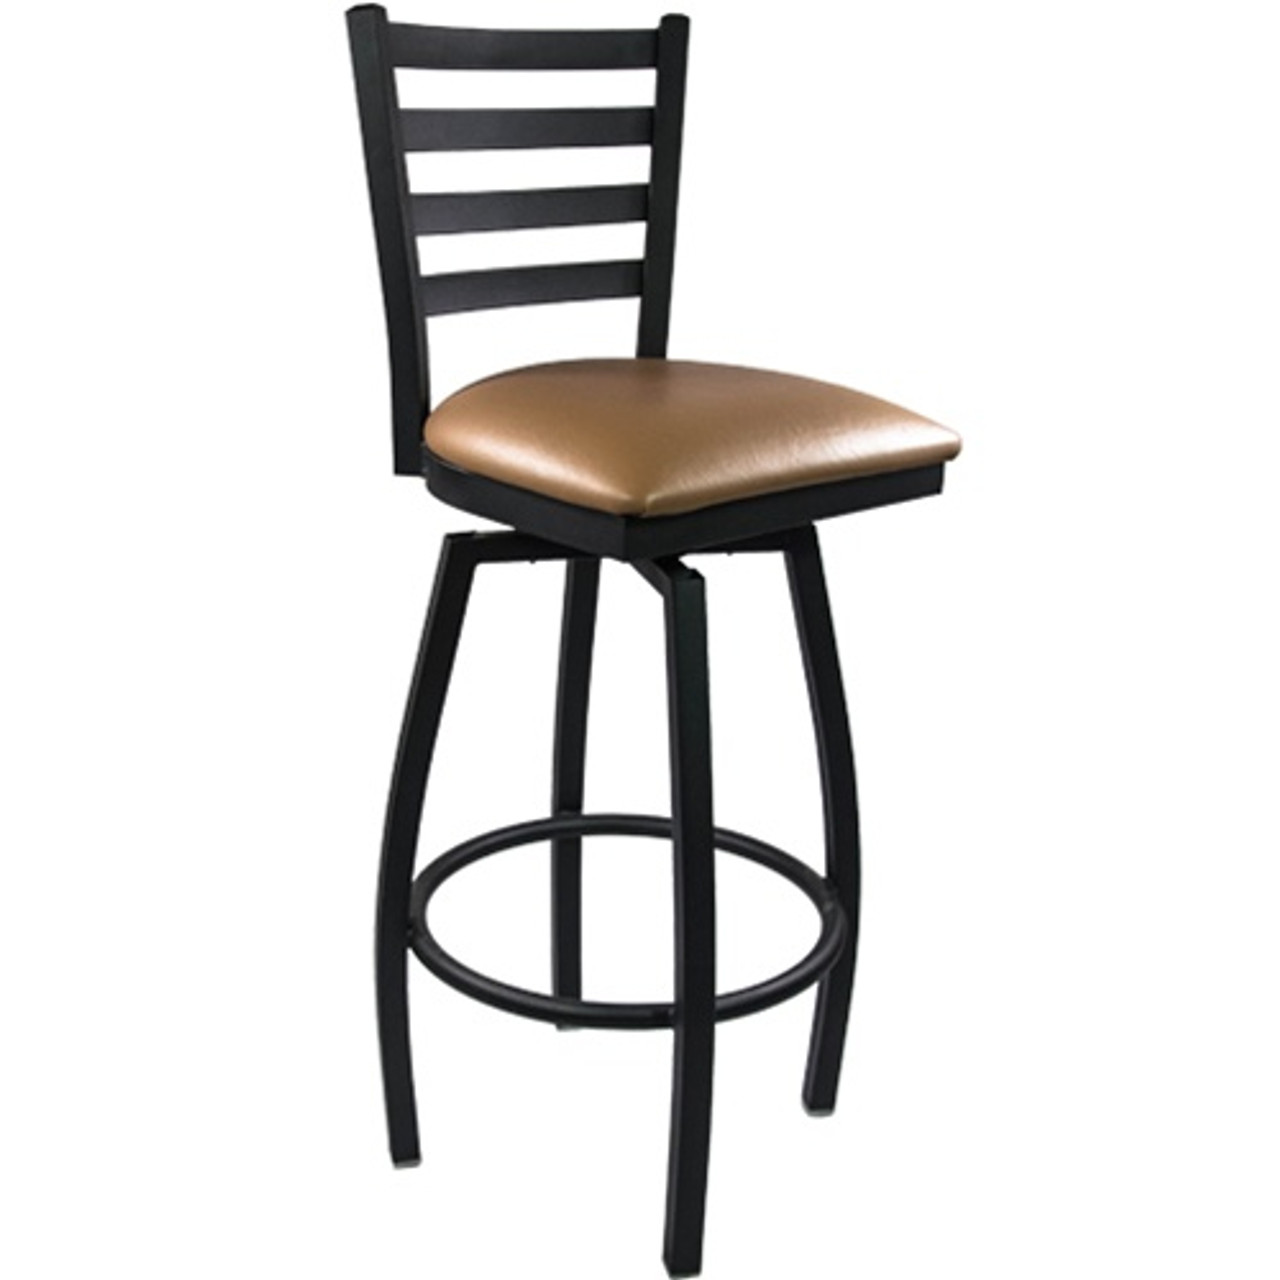 Brilliant Advantage Ladder Back Metal Swivel Bar Stool Beige Padded Sblb Bfbgv Squirreltailoven Fun Painted Chair Ideas Images Squirreltailovenorg